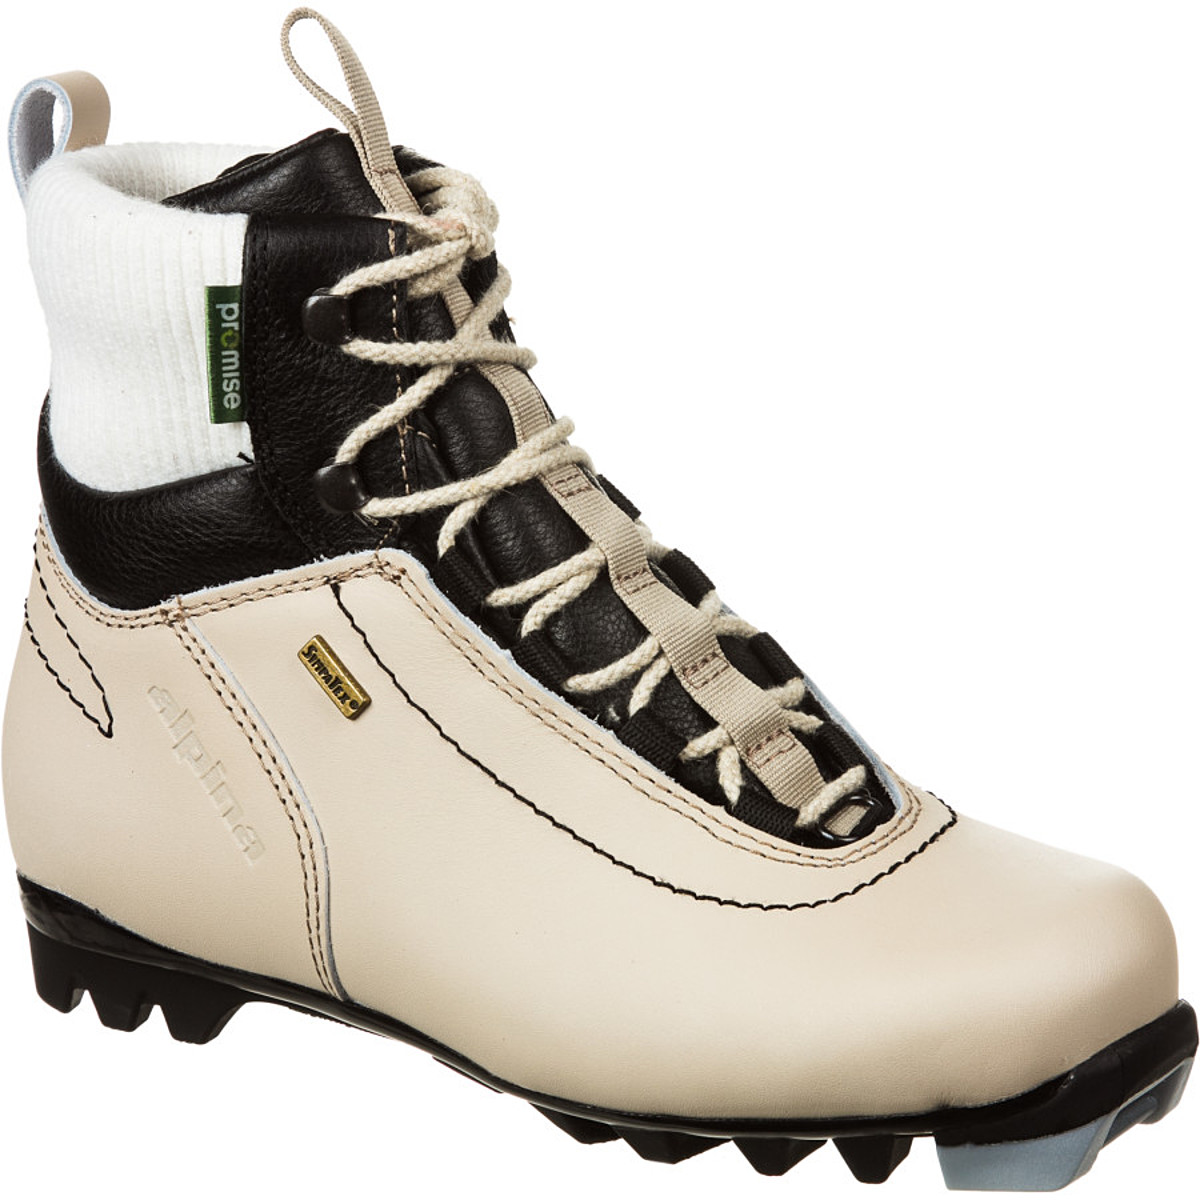 photo: Alpina T Promise Eve nordic touring boot